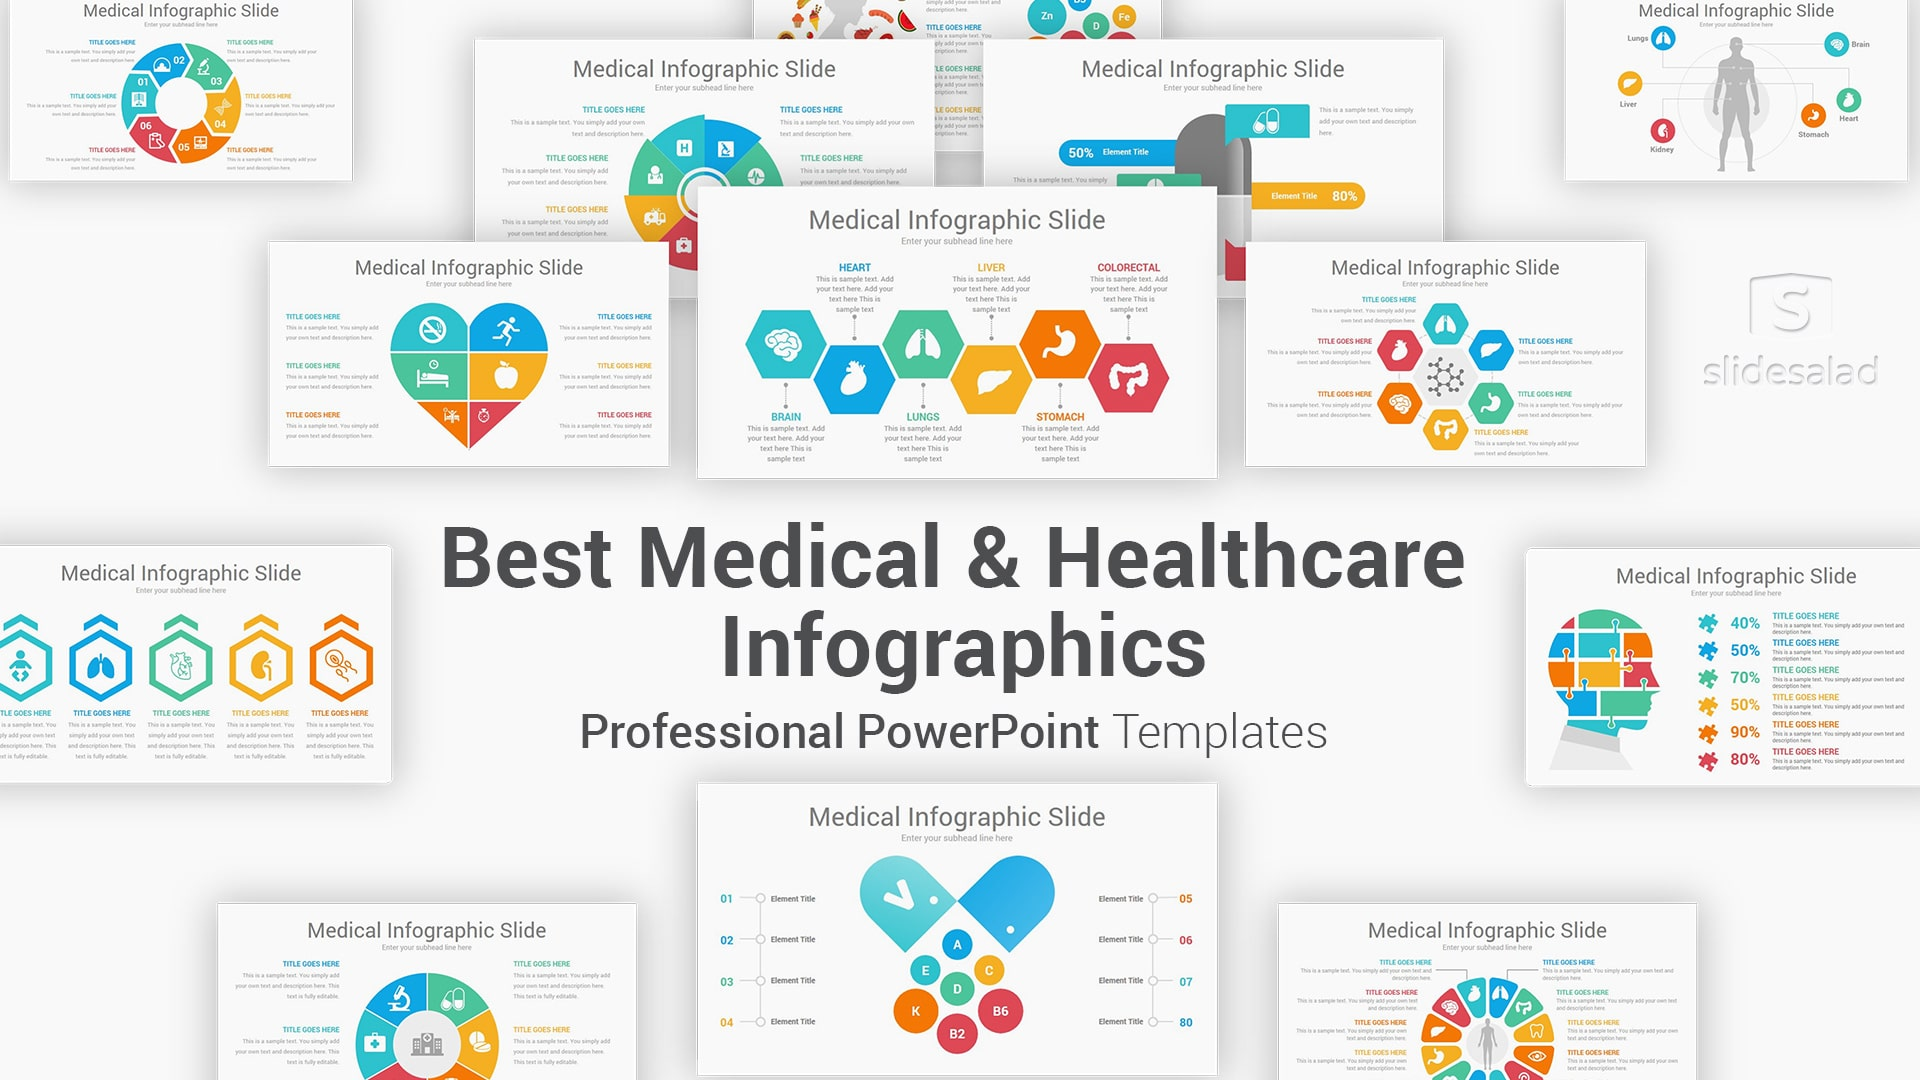 Medical and Healthcare Infographics PowerPoint Template – Best PowerPoint Infographic Templates